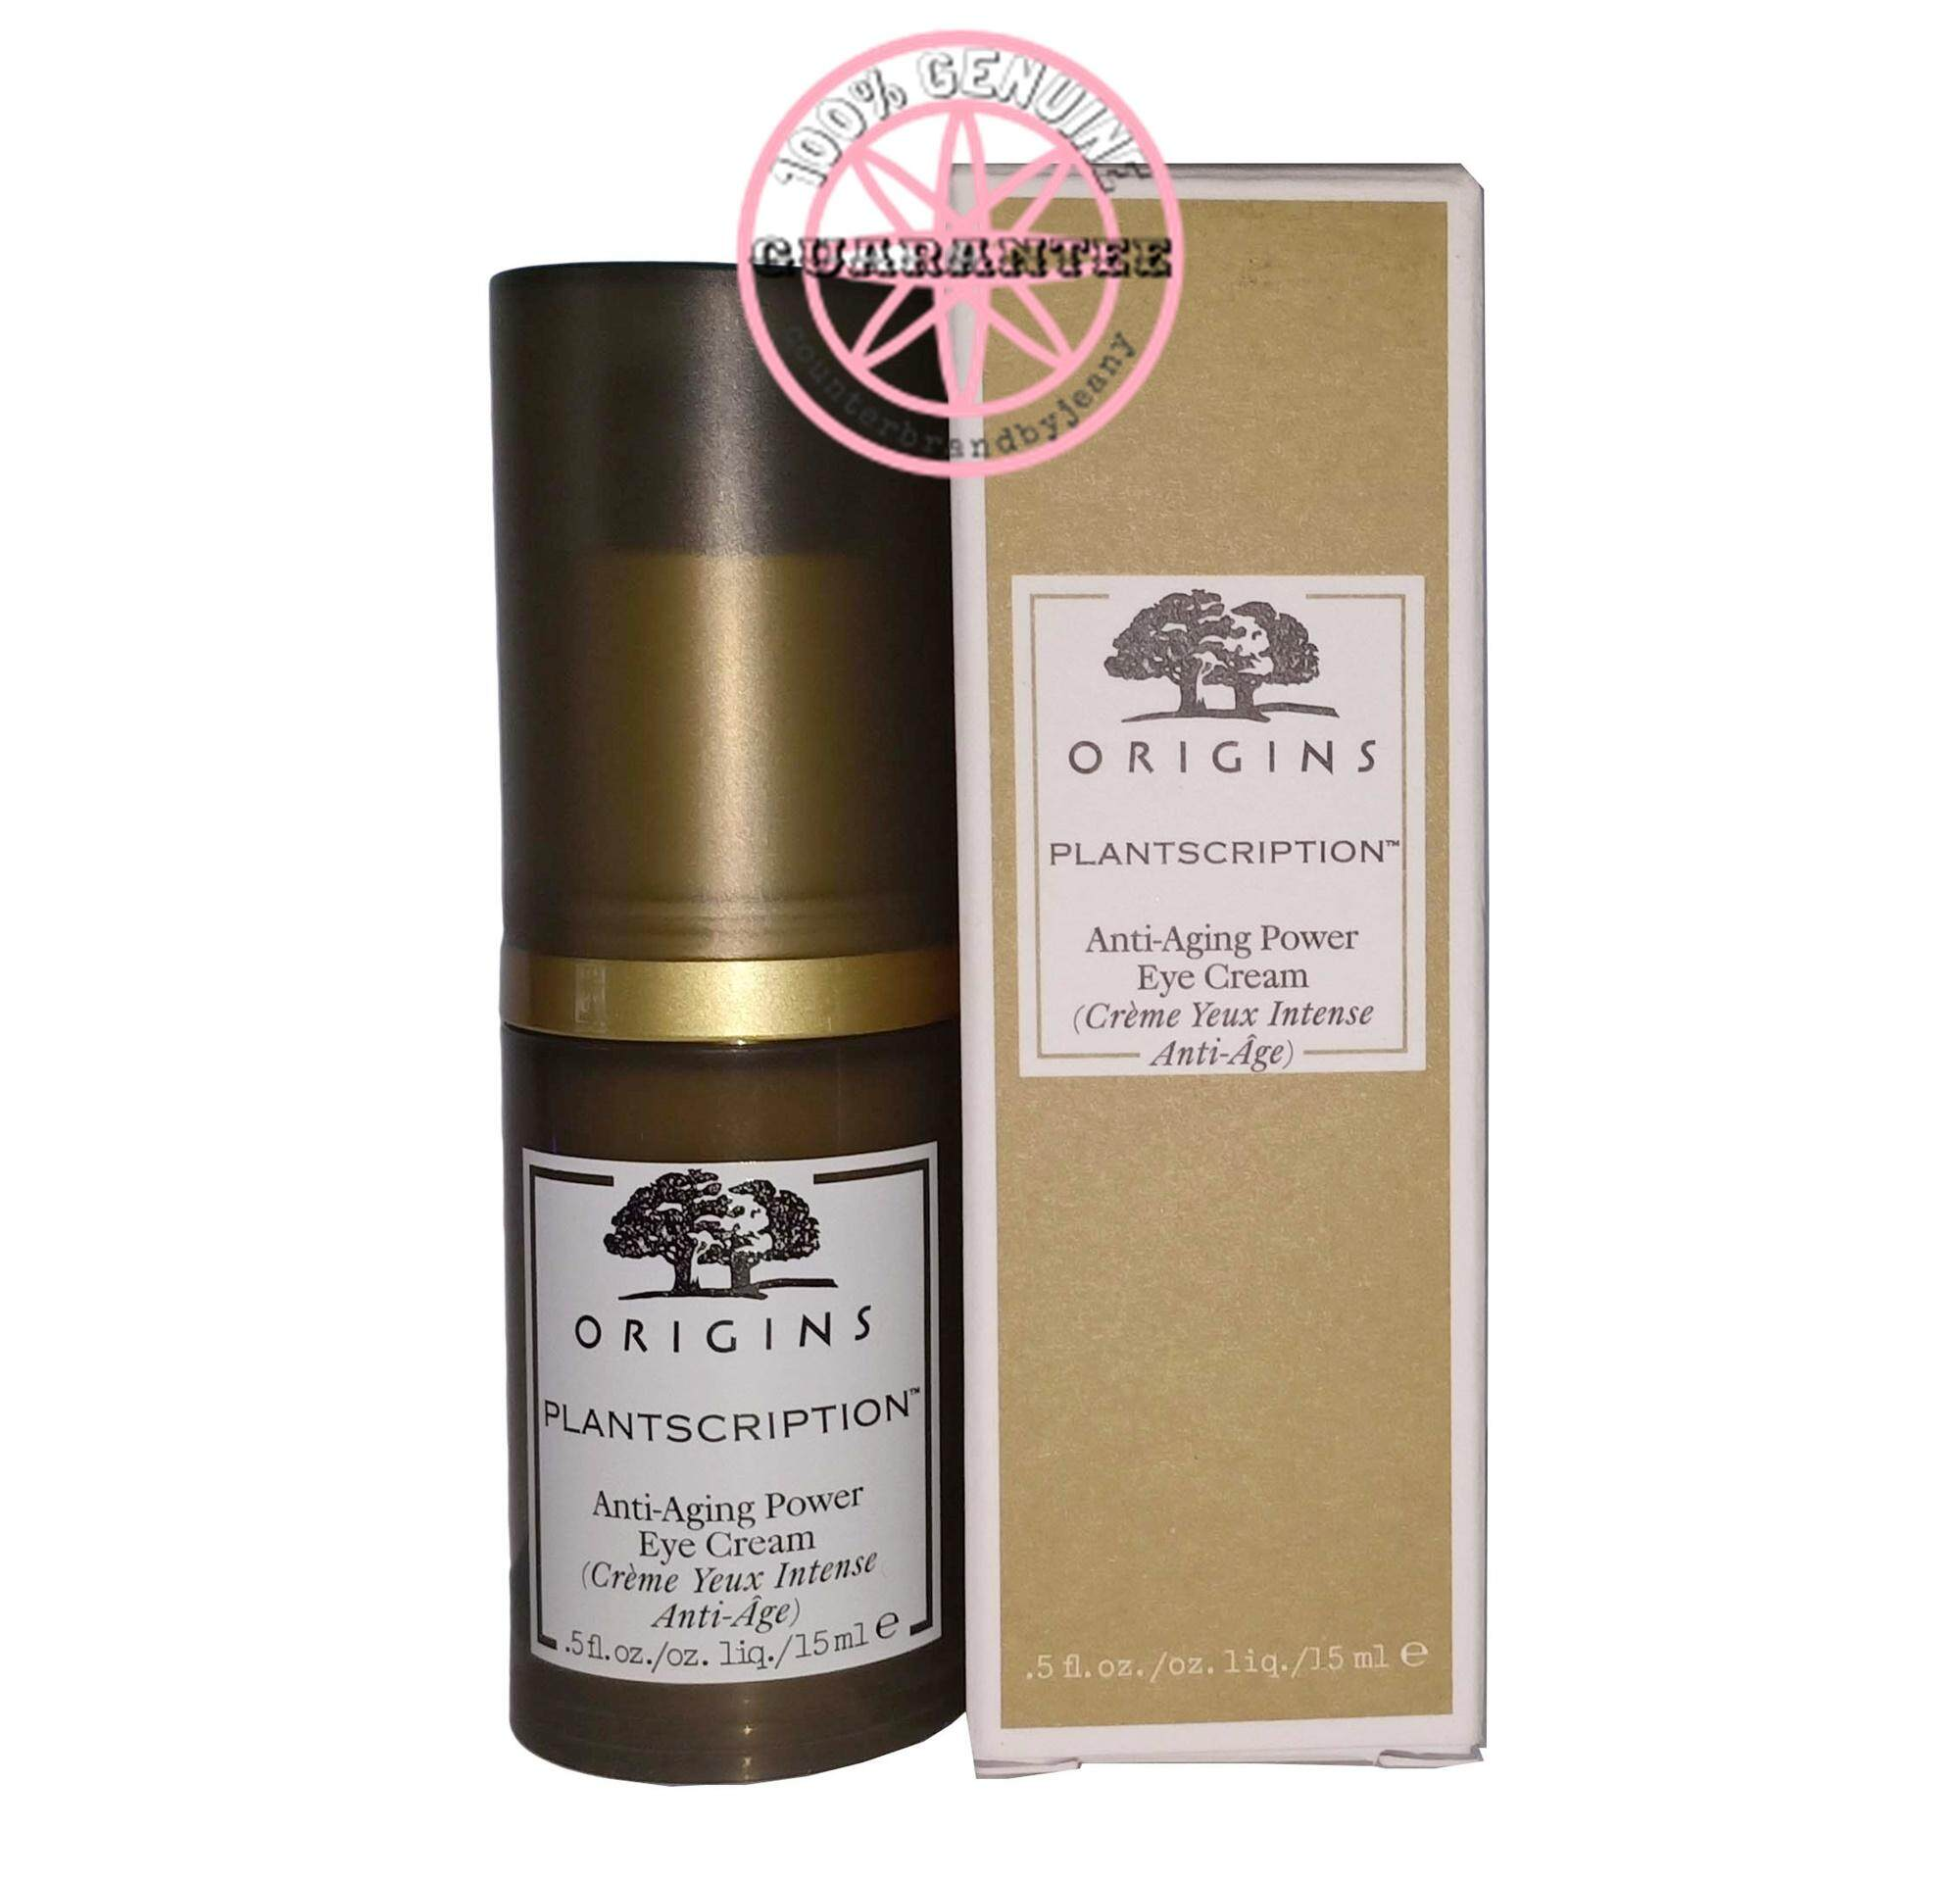 ORIGINS PLANTSCRIPTION Anti aging Power Eye Cream 15mL